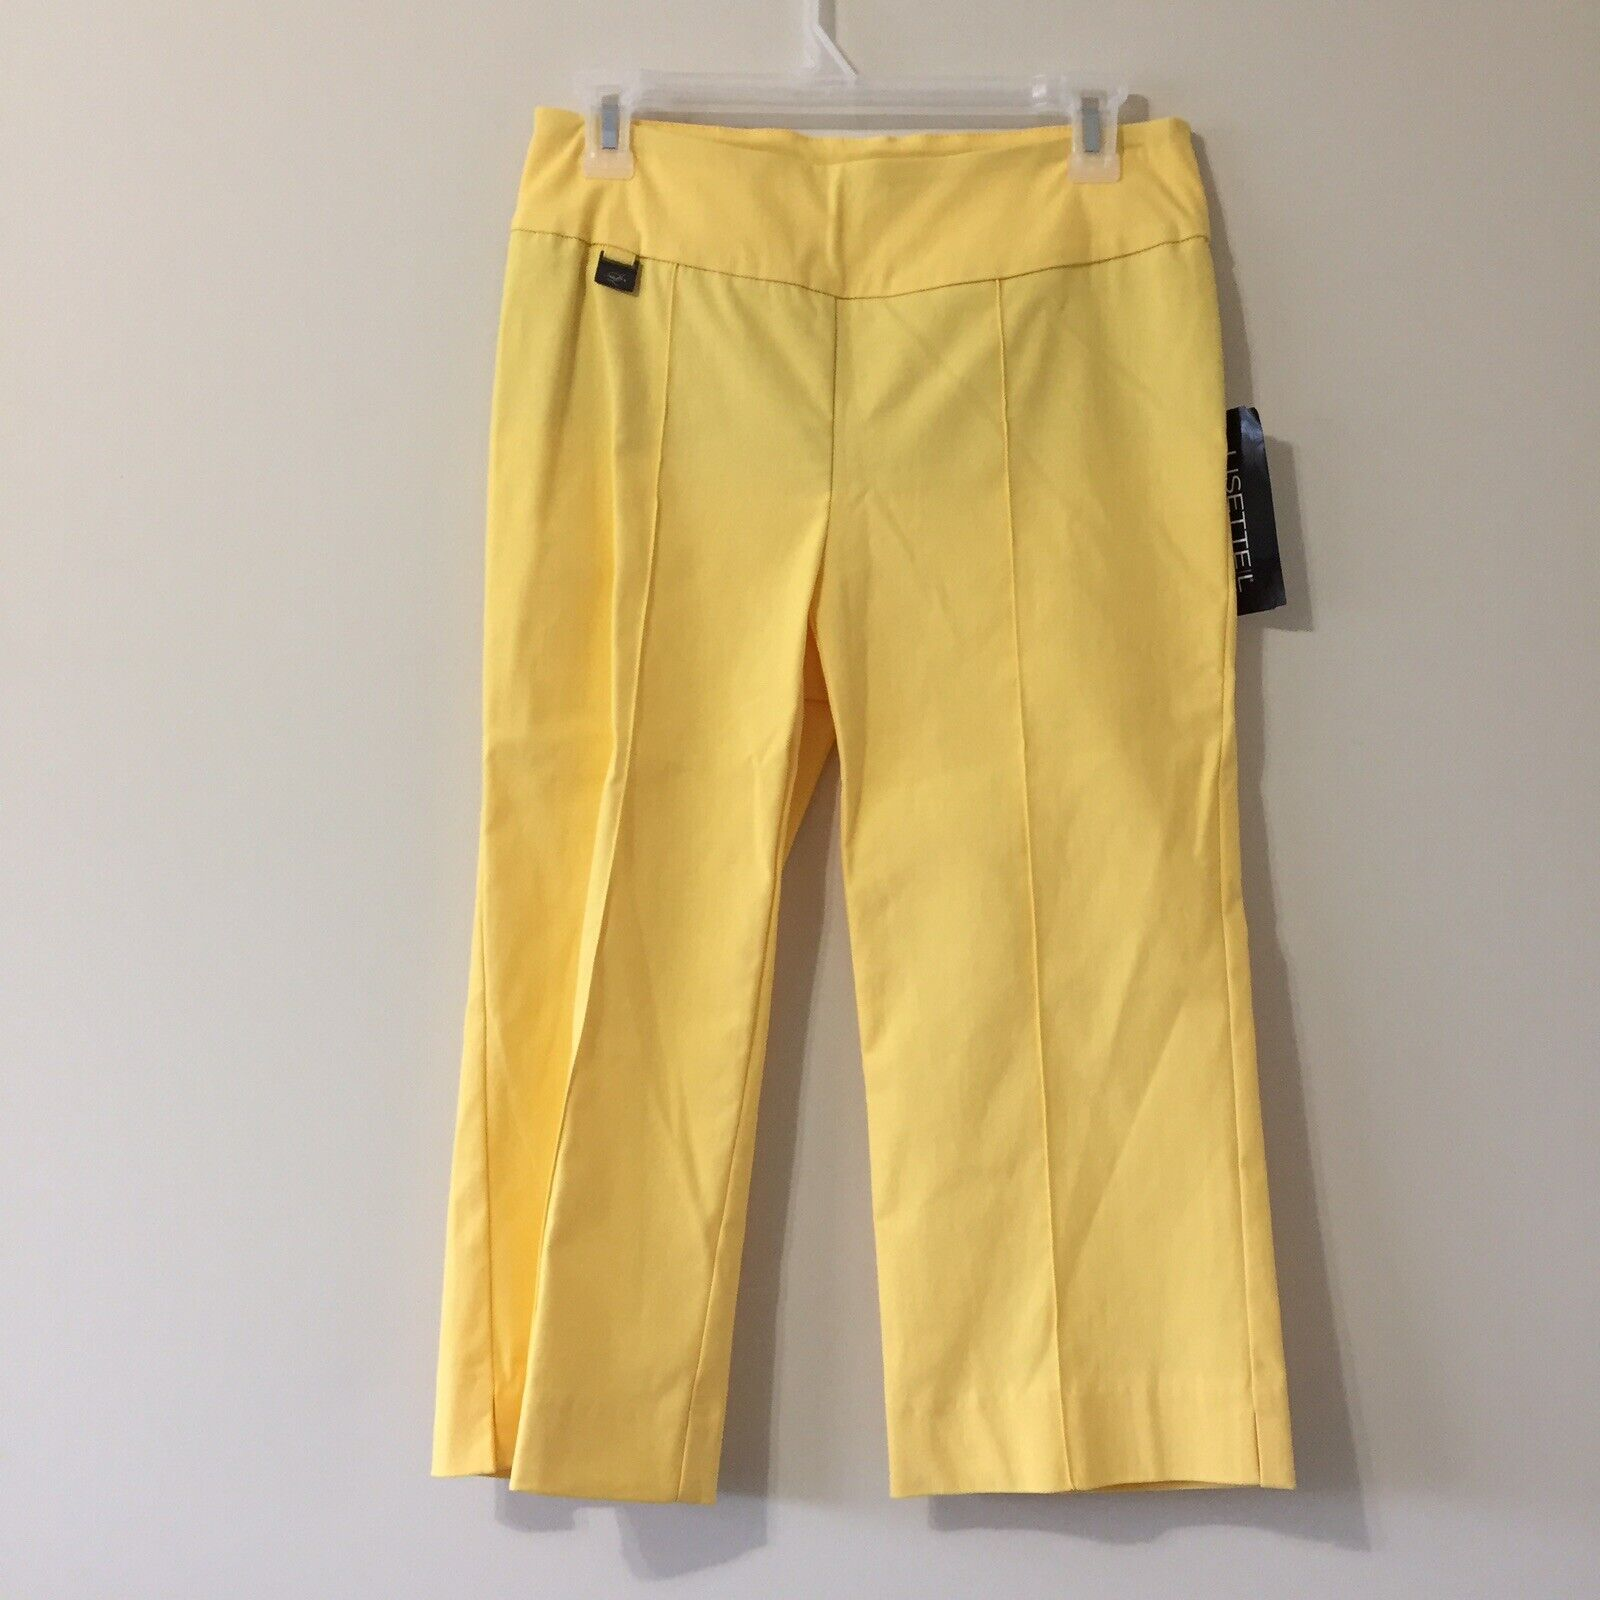 Lisette L Montreal Pants Yellow Size 8 28  waist 28  Long Spring 2015 18  inseam